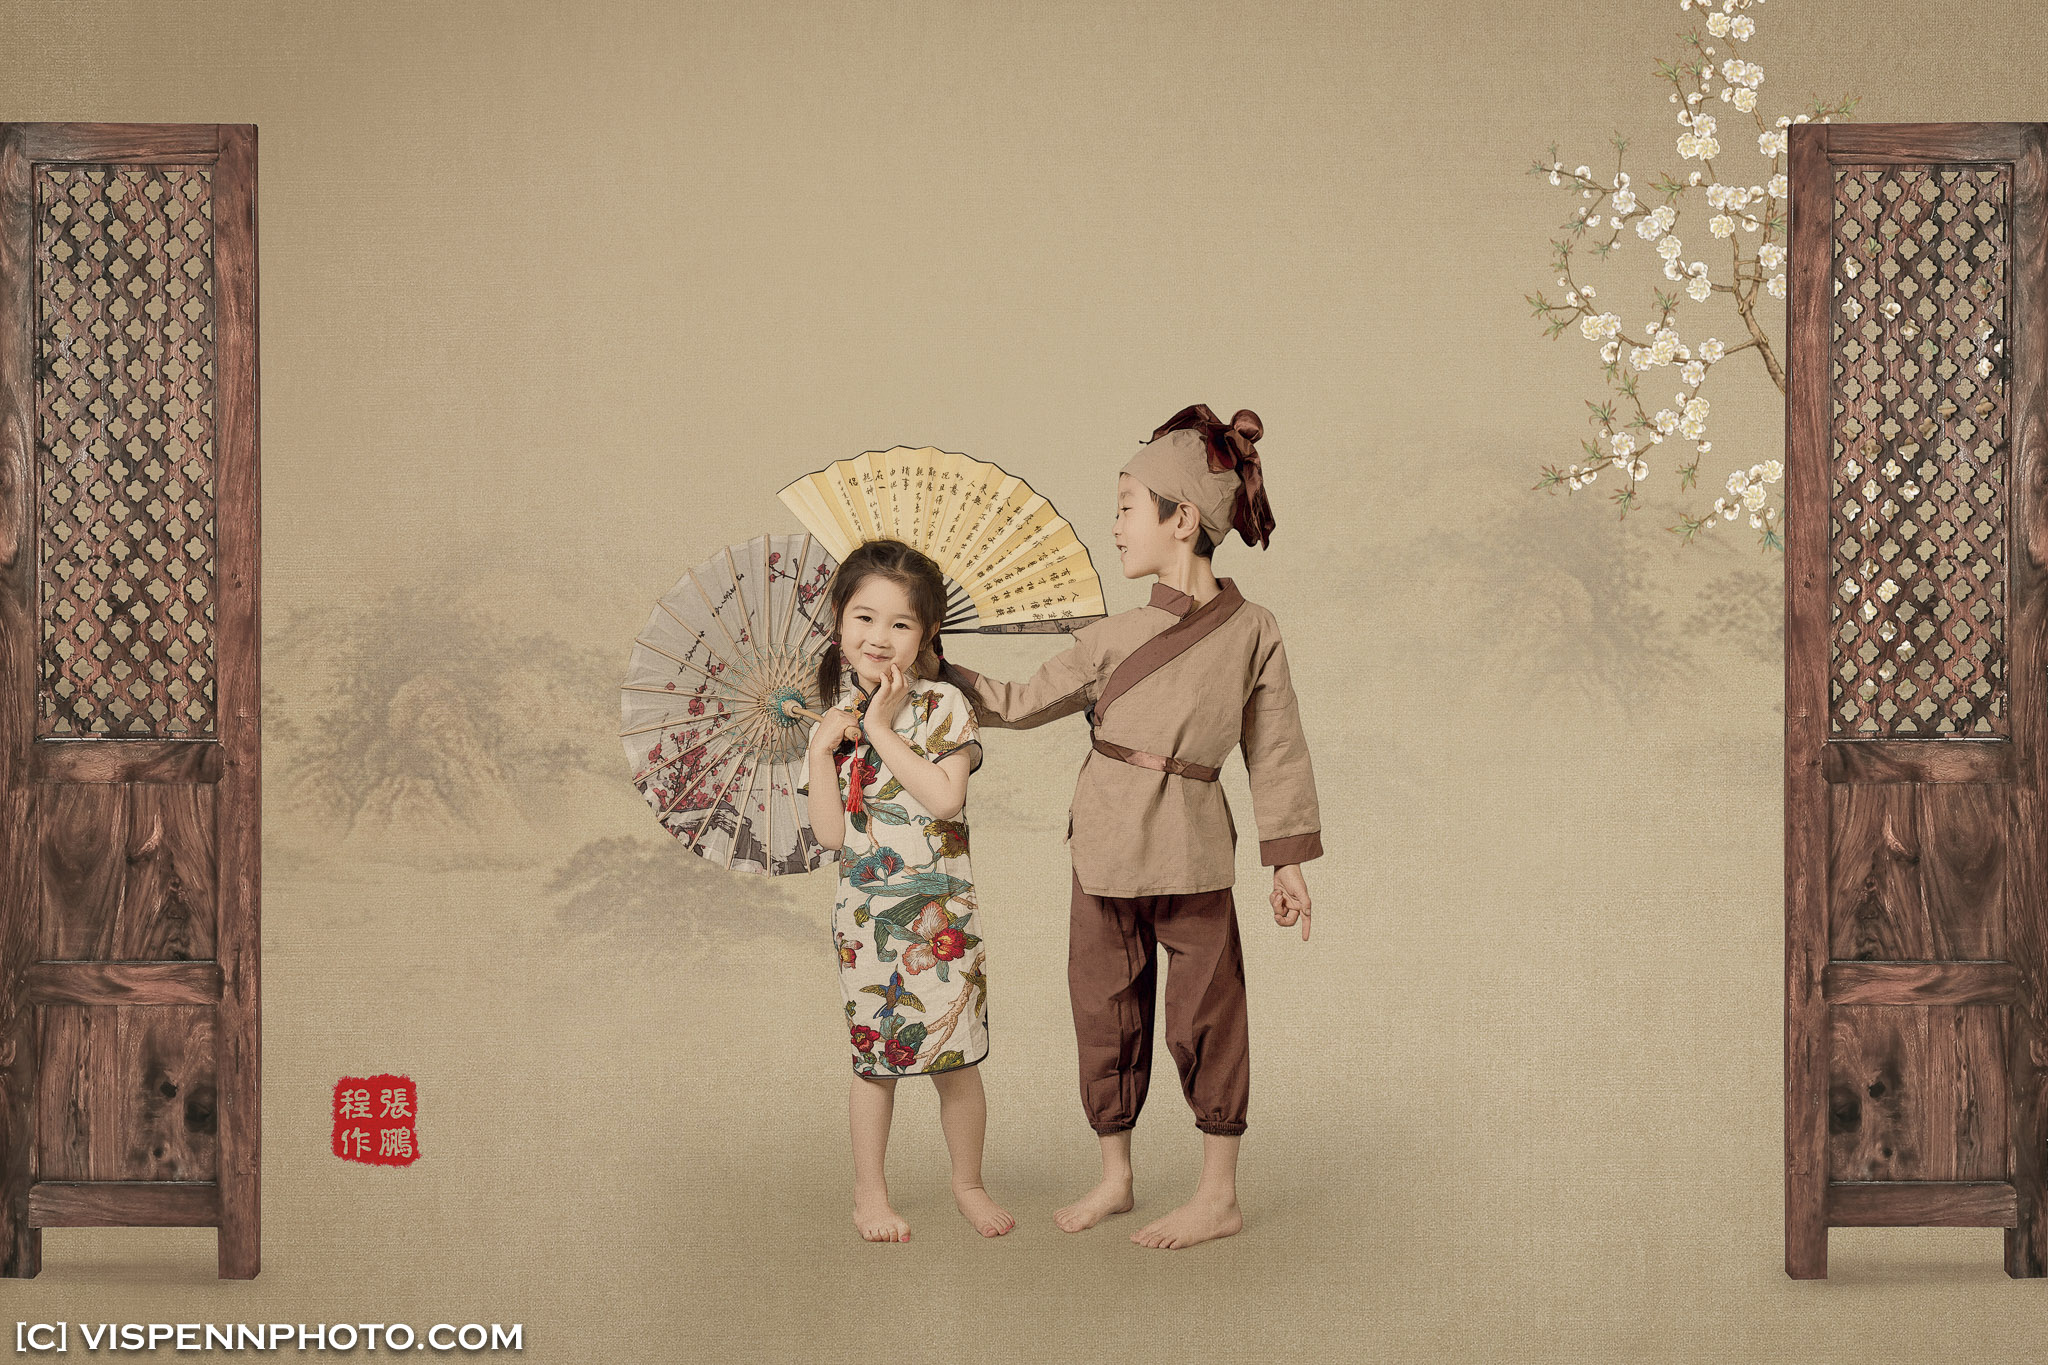 Melbourne Newborn Baby Family Photo BaoBao VISPENN 墨尔本 儿童 宝宝 百天照 满月照 孕妇照 全家福 KIDS VISPENN KathyZou 3245